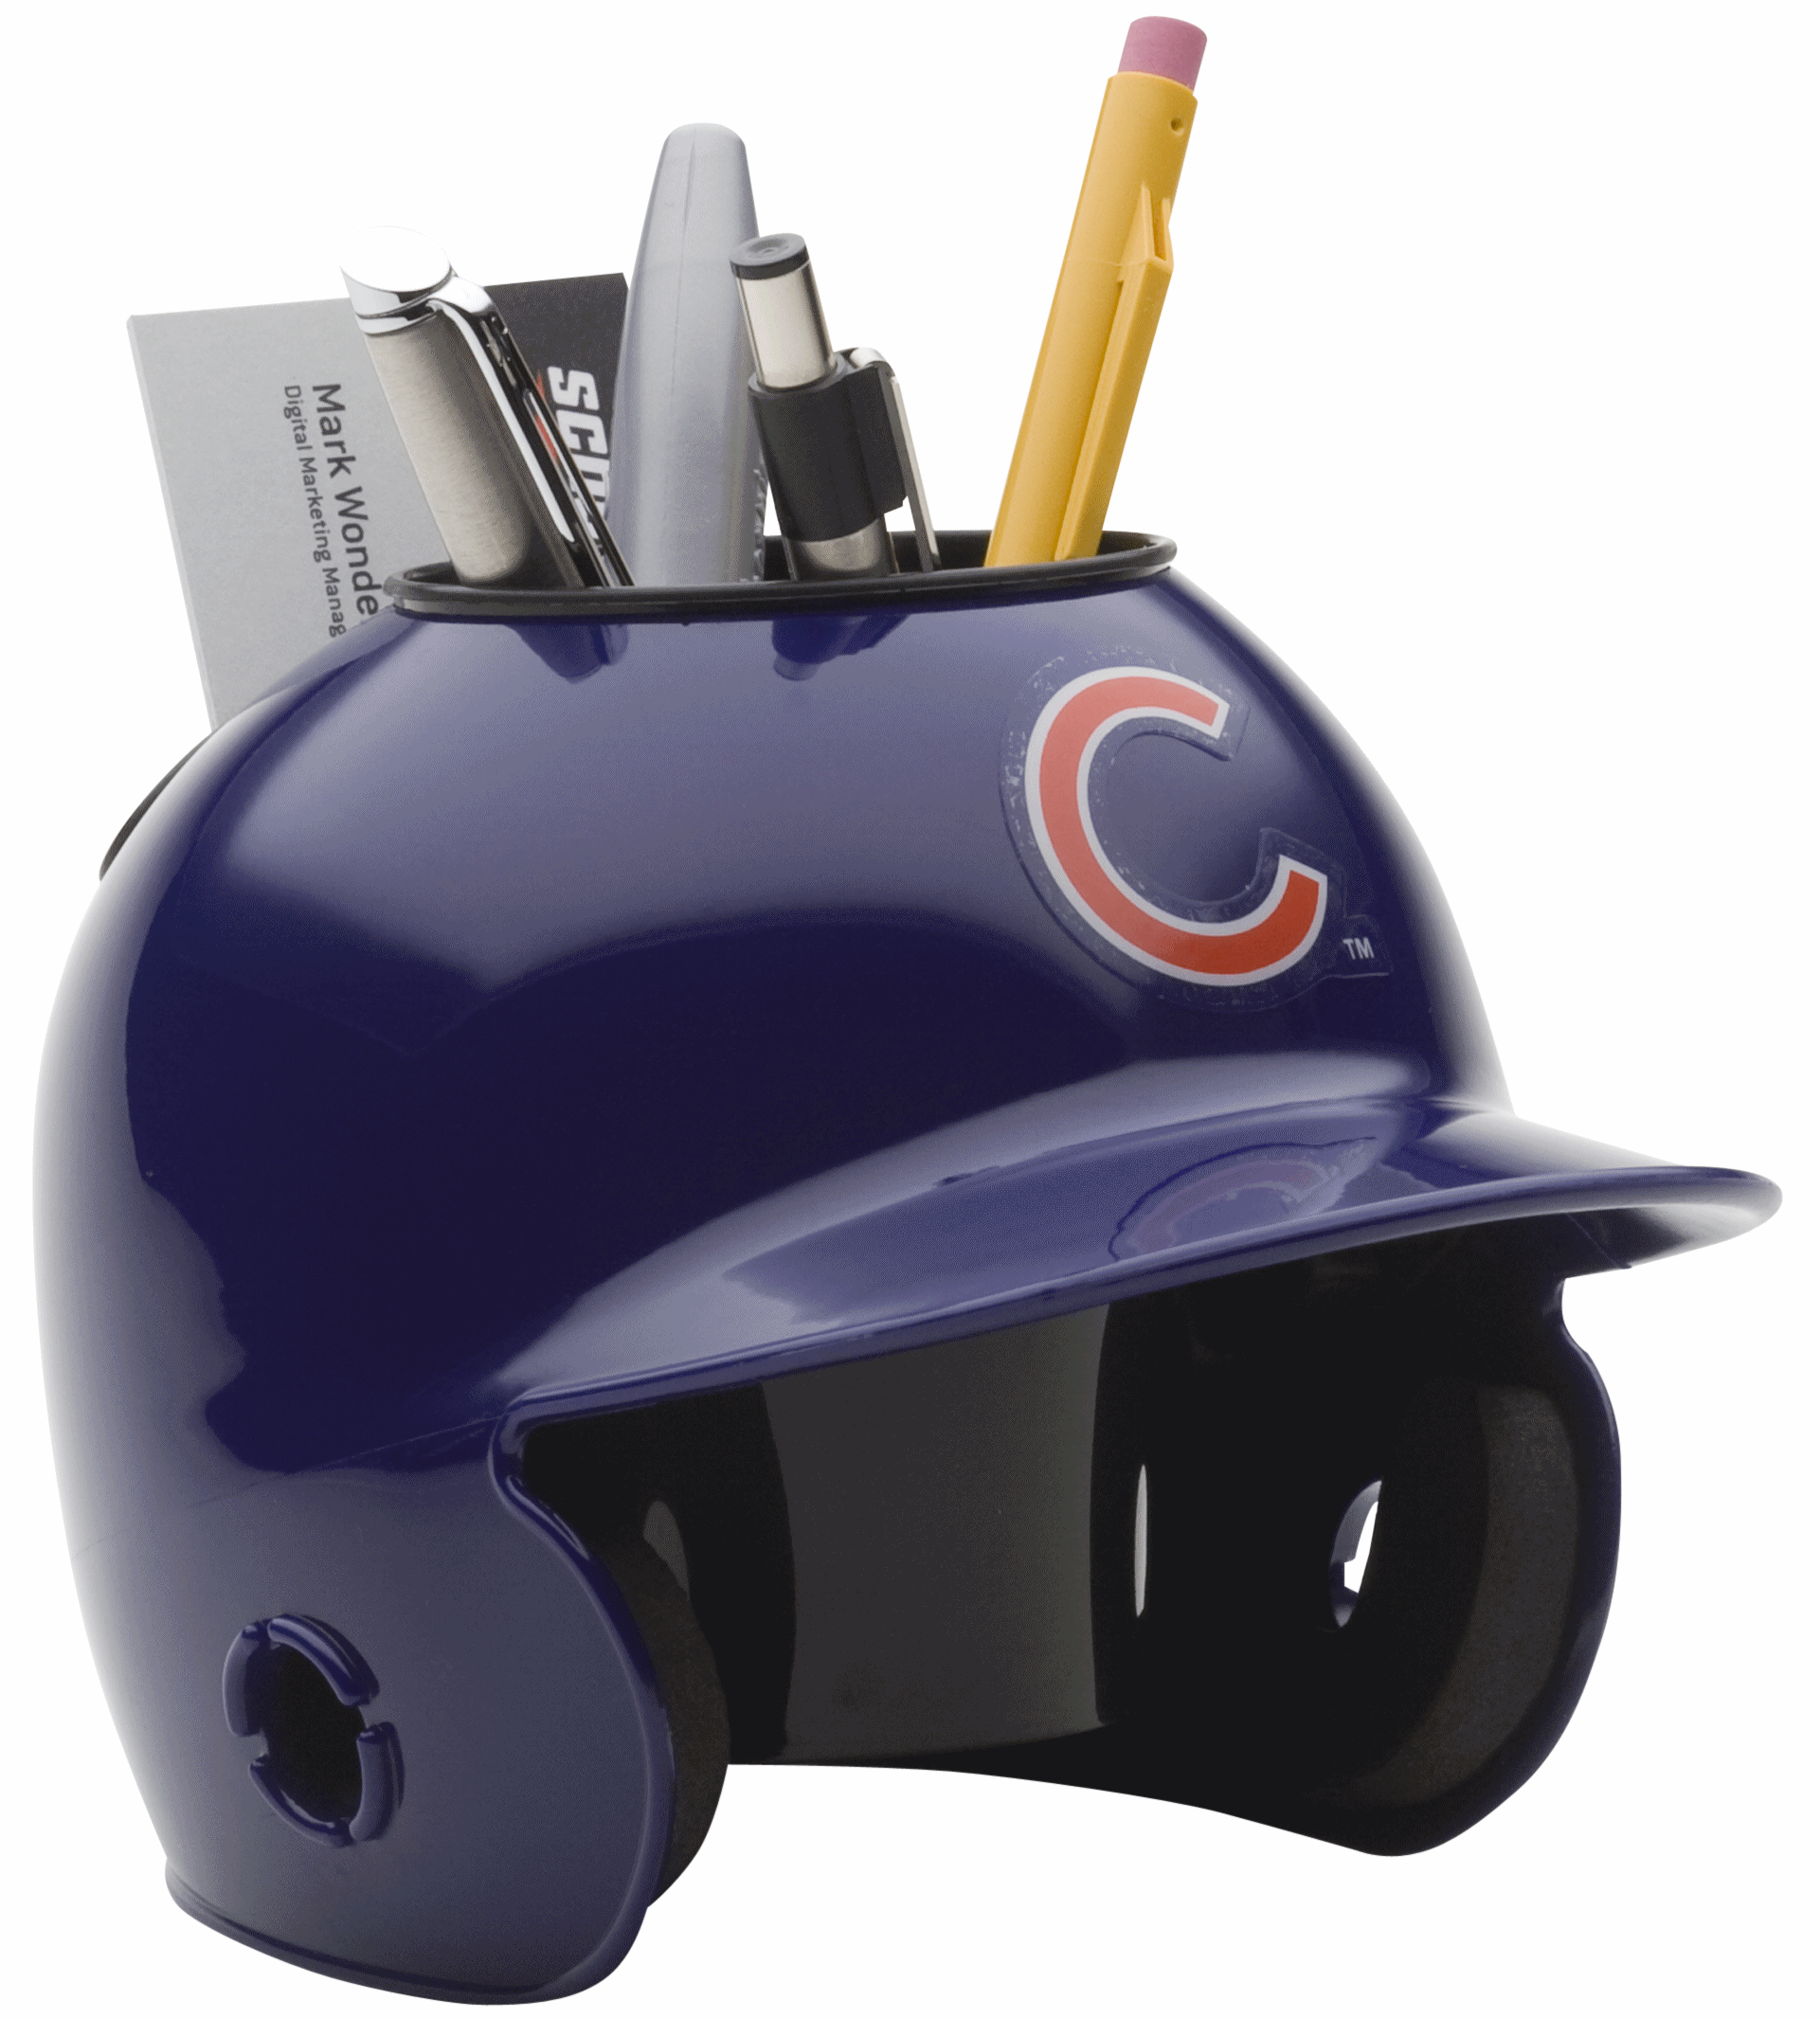 Chicago Cubs Miniature Batters Helmet Desk Caddy